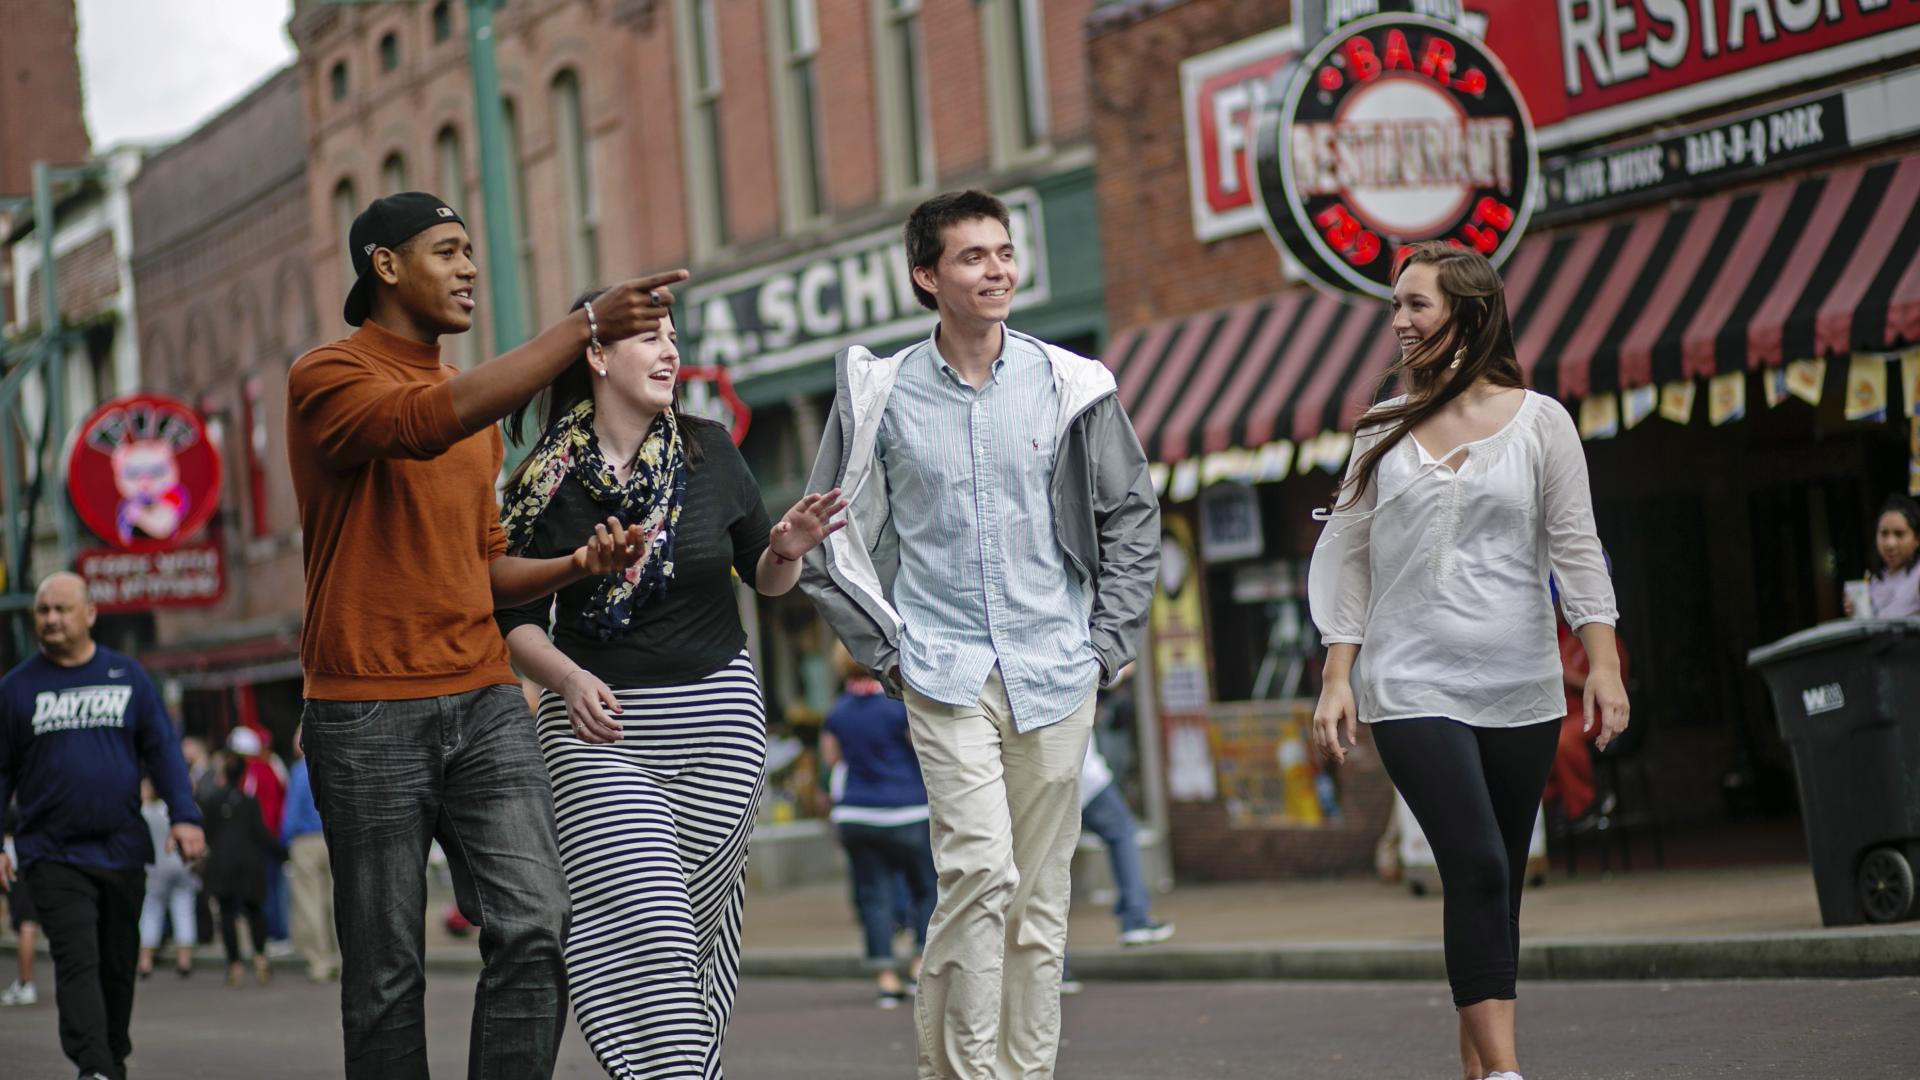 Students walking down Beale Street